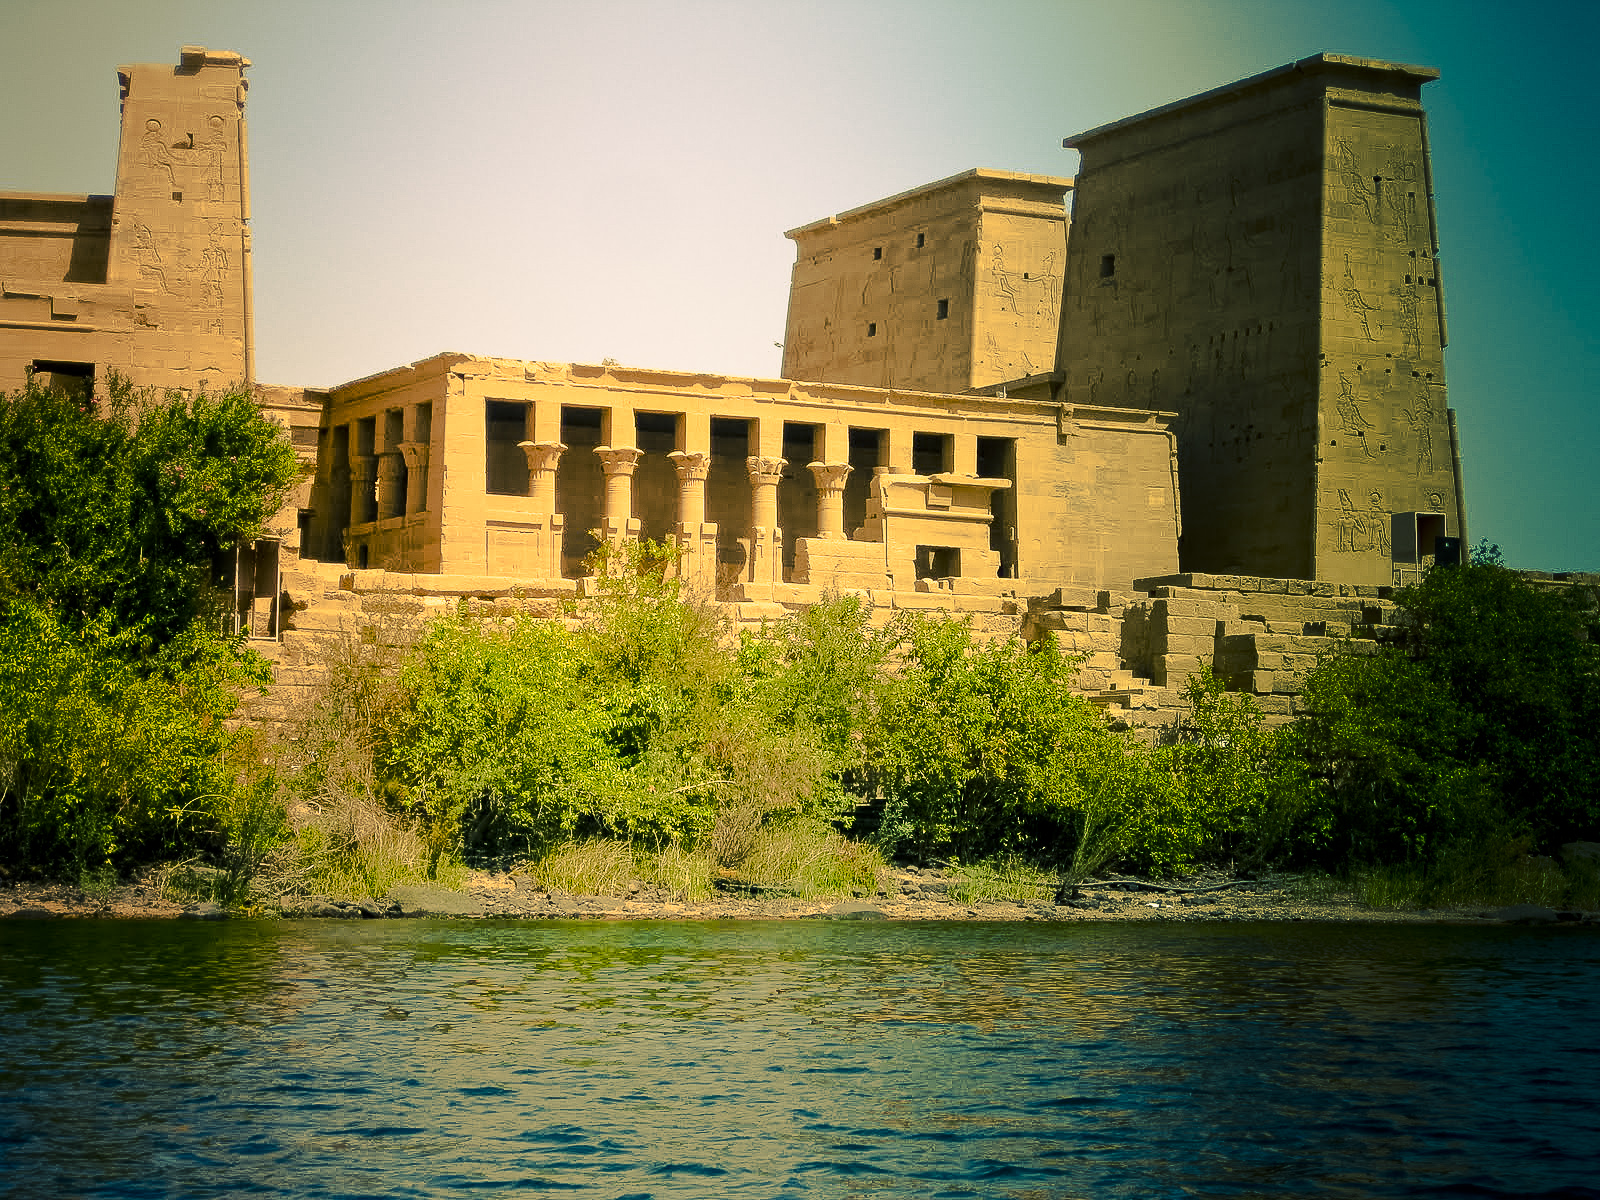 Philae Temple from the Nile